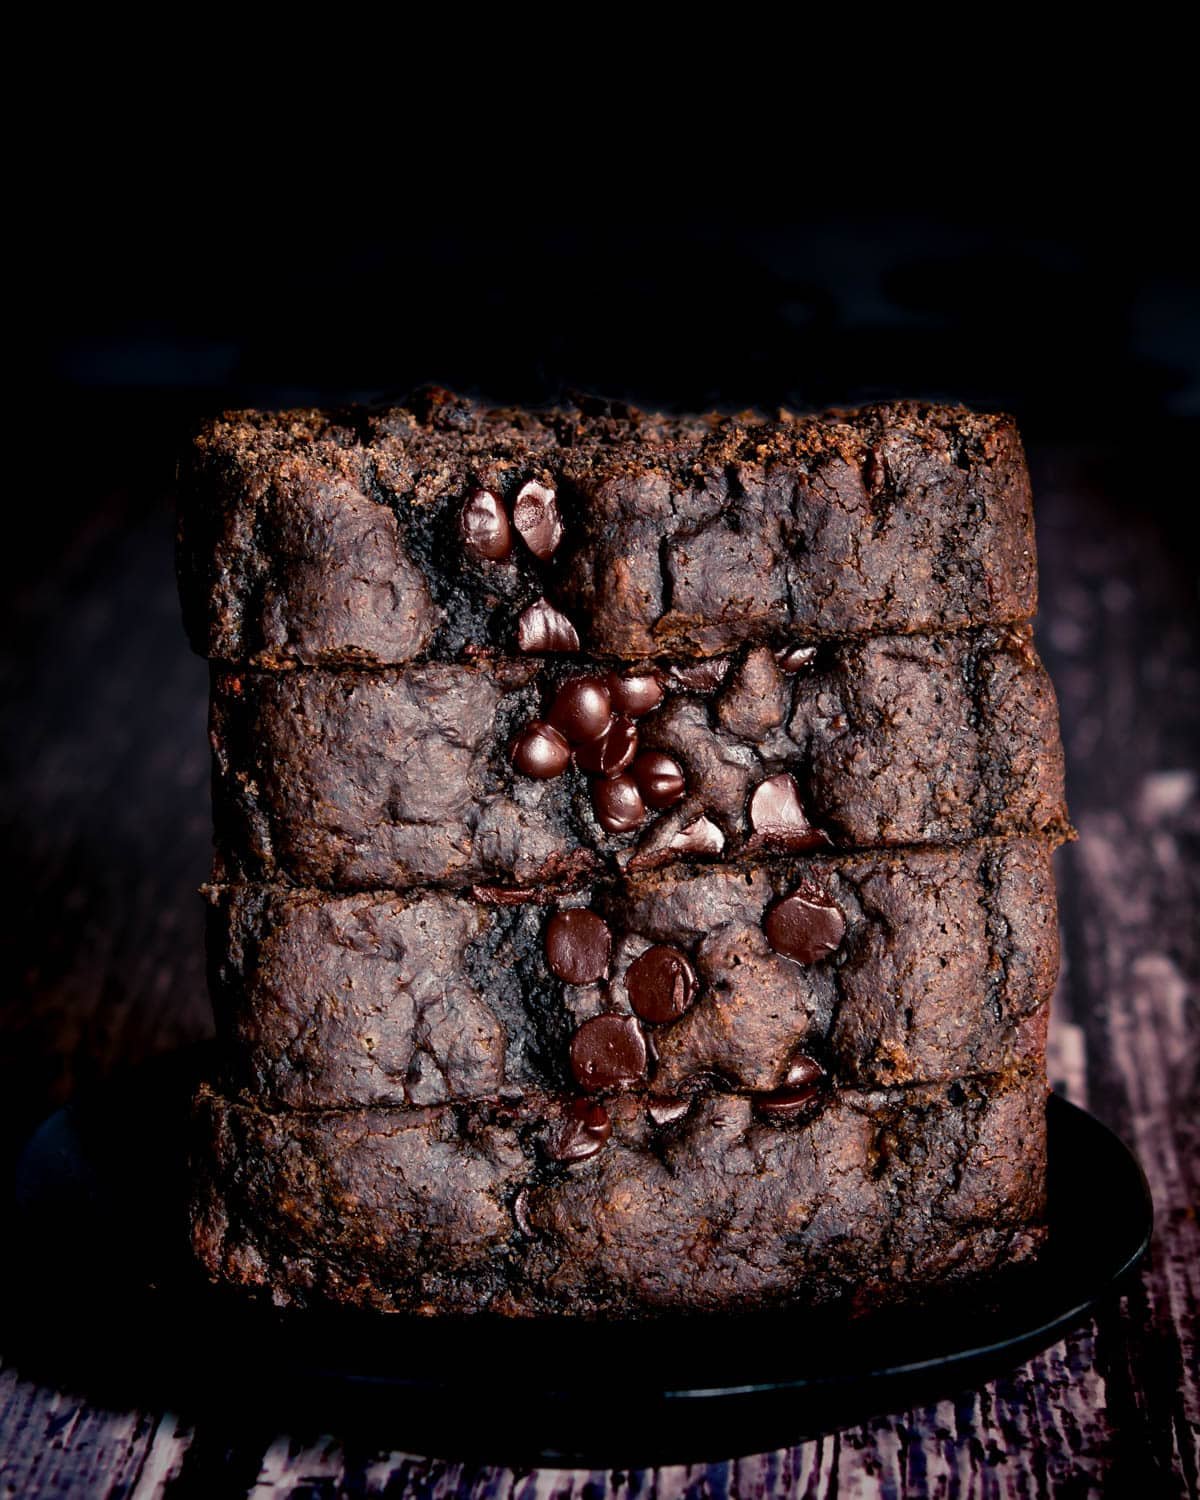 Stack of black tahini banana bread slices on black plate on wooden table close up